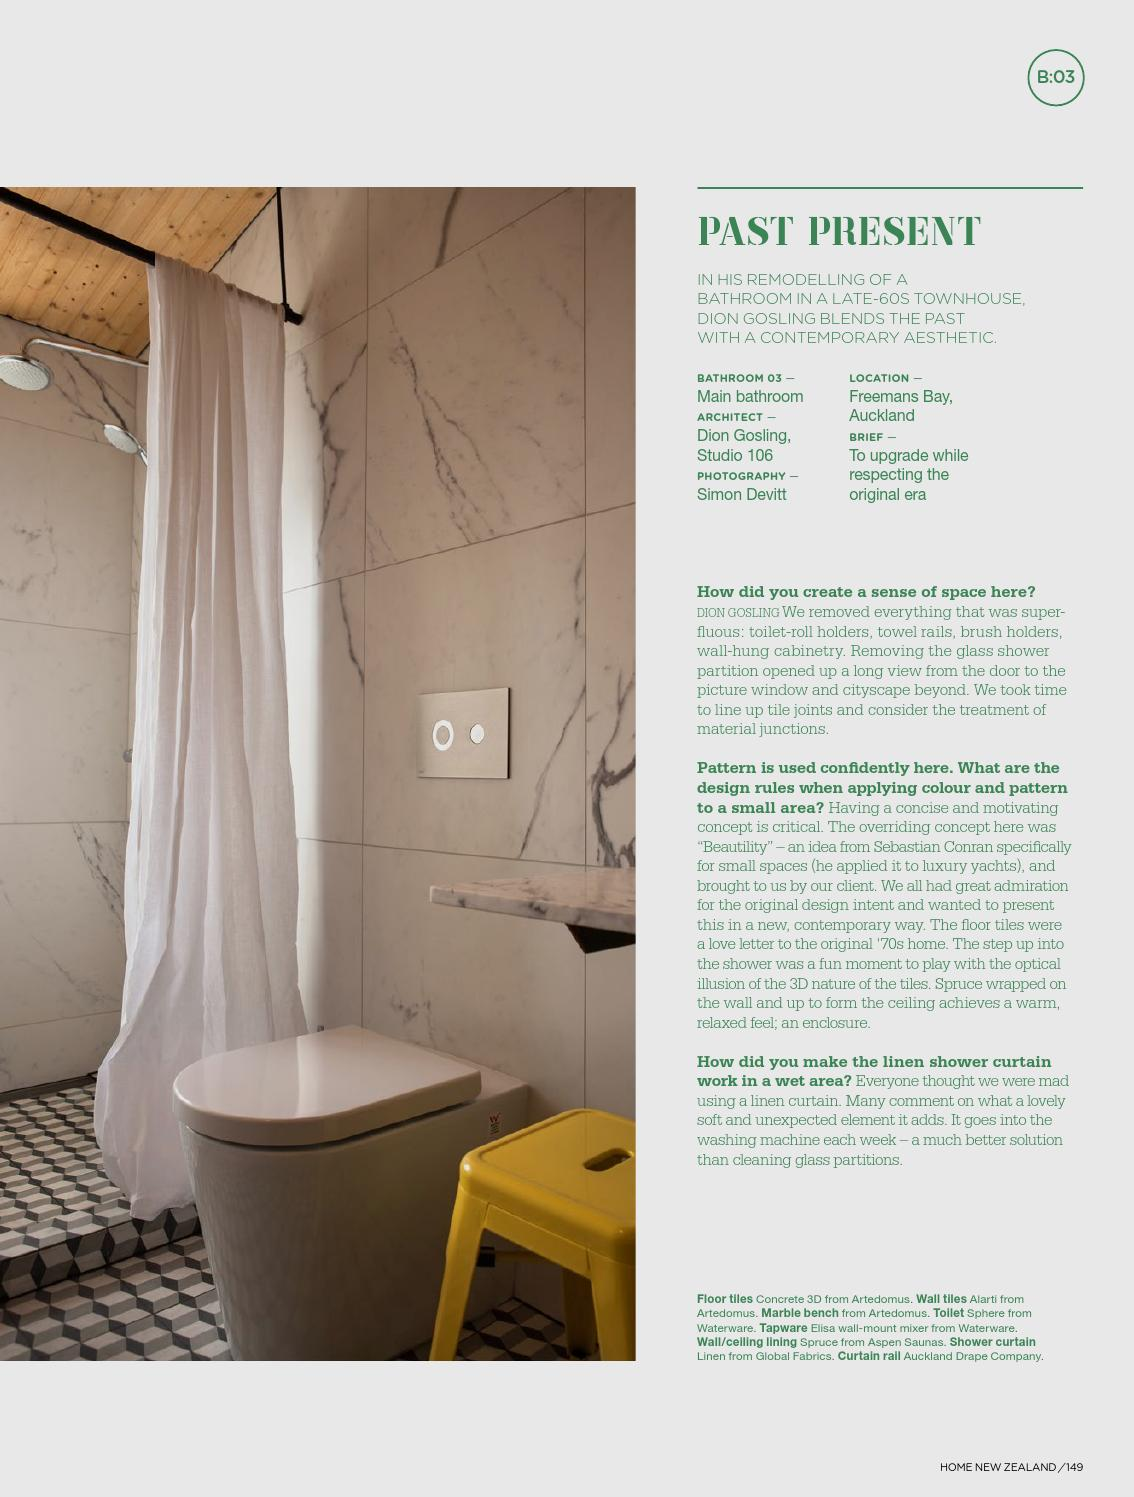 HOME NZ OctoberNovember By HOME NZ Issuu - Bathroom partitions bay area